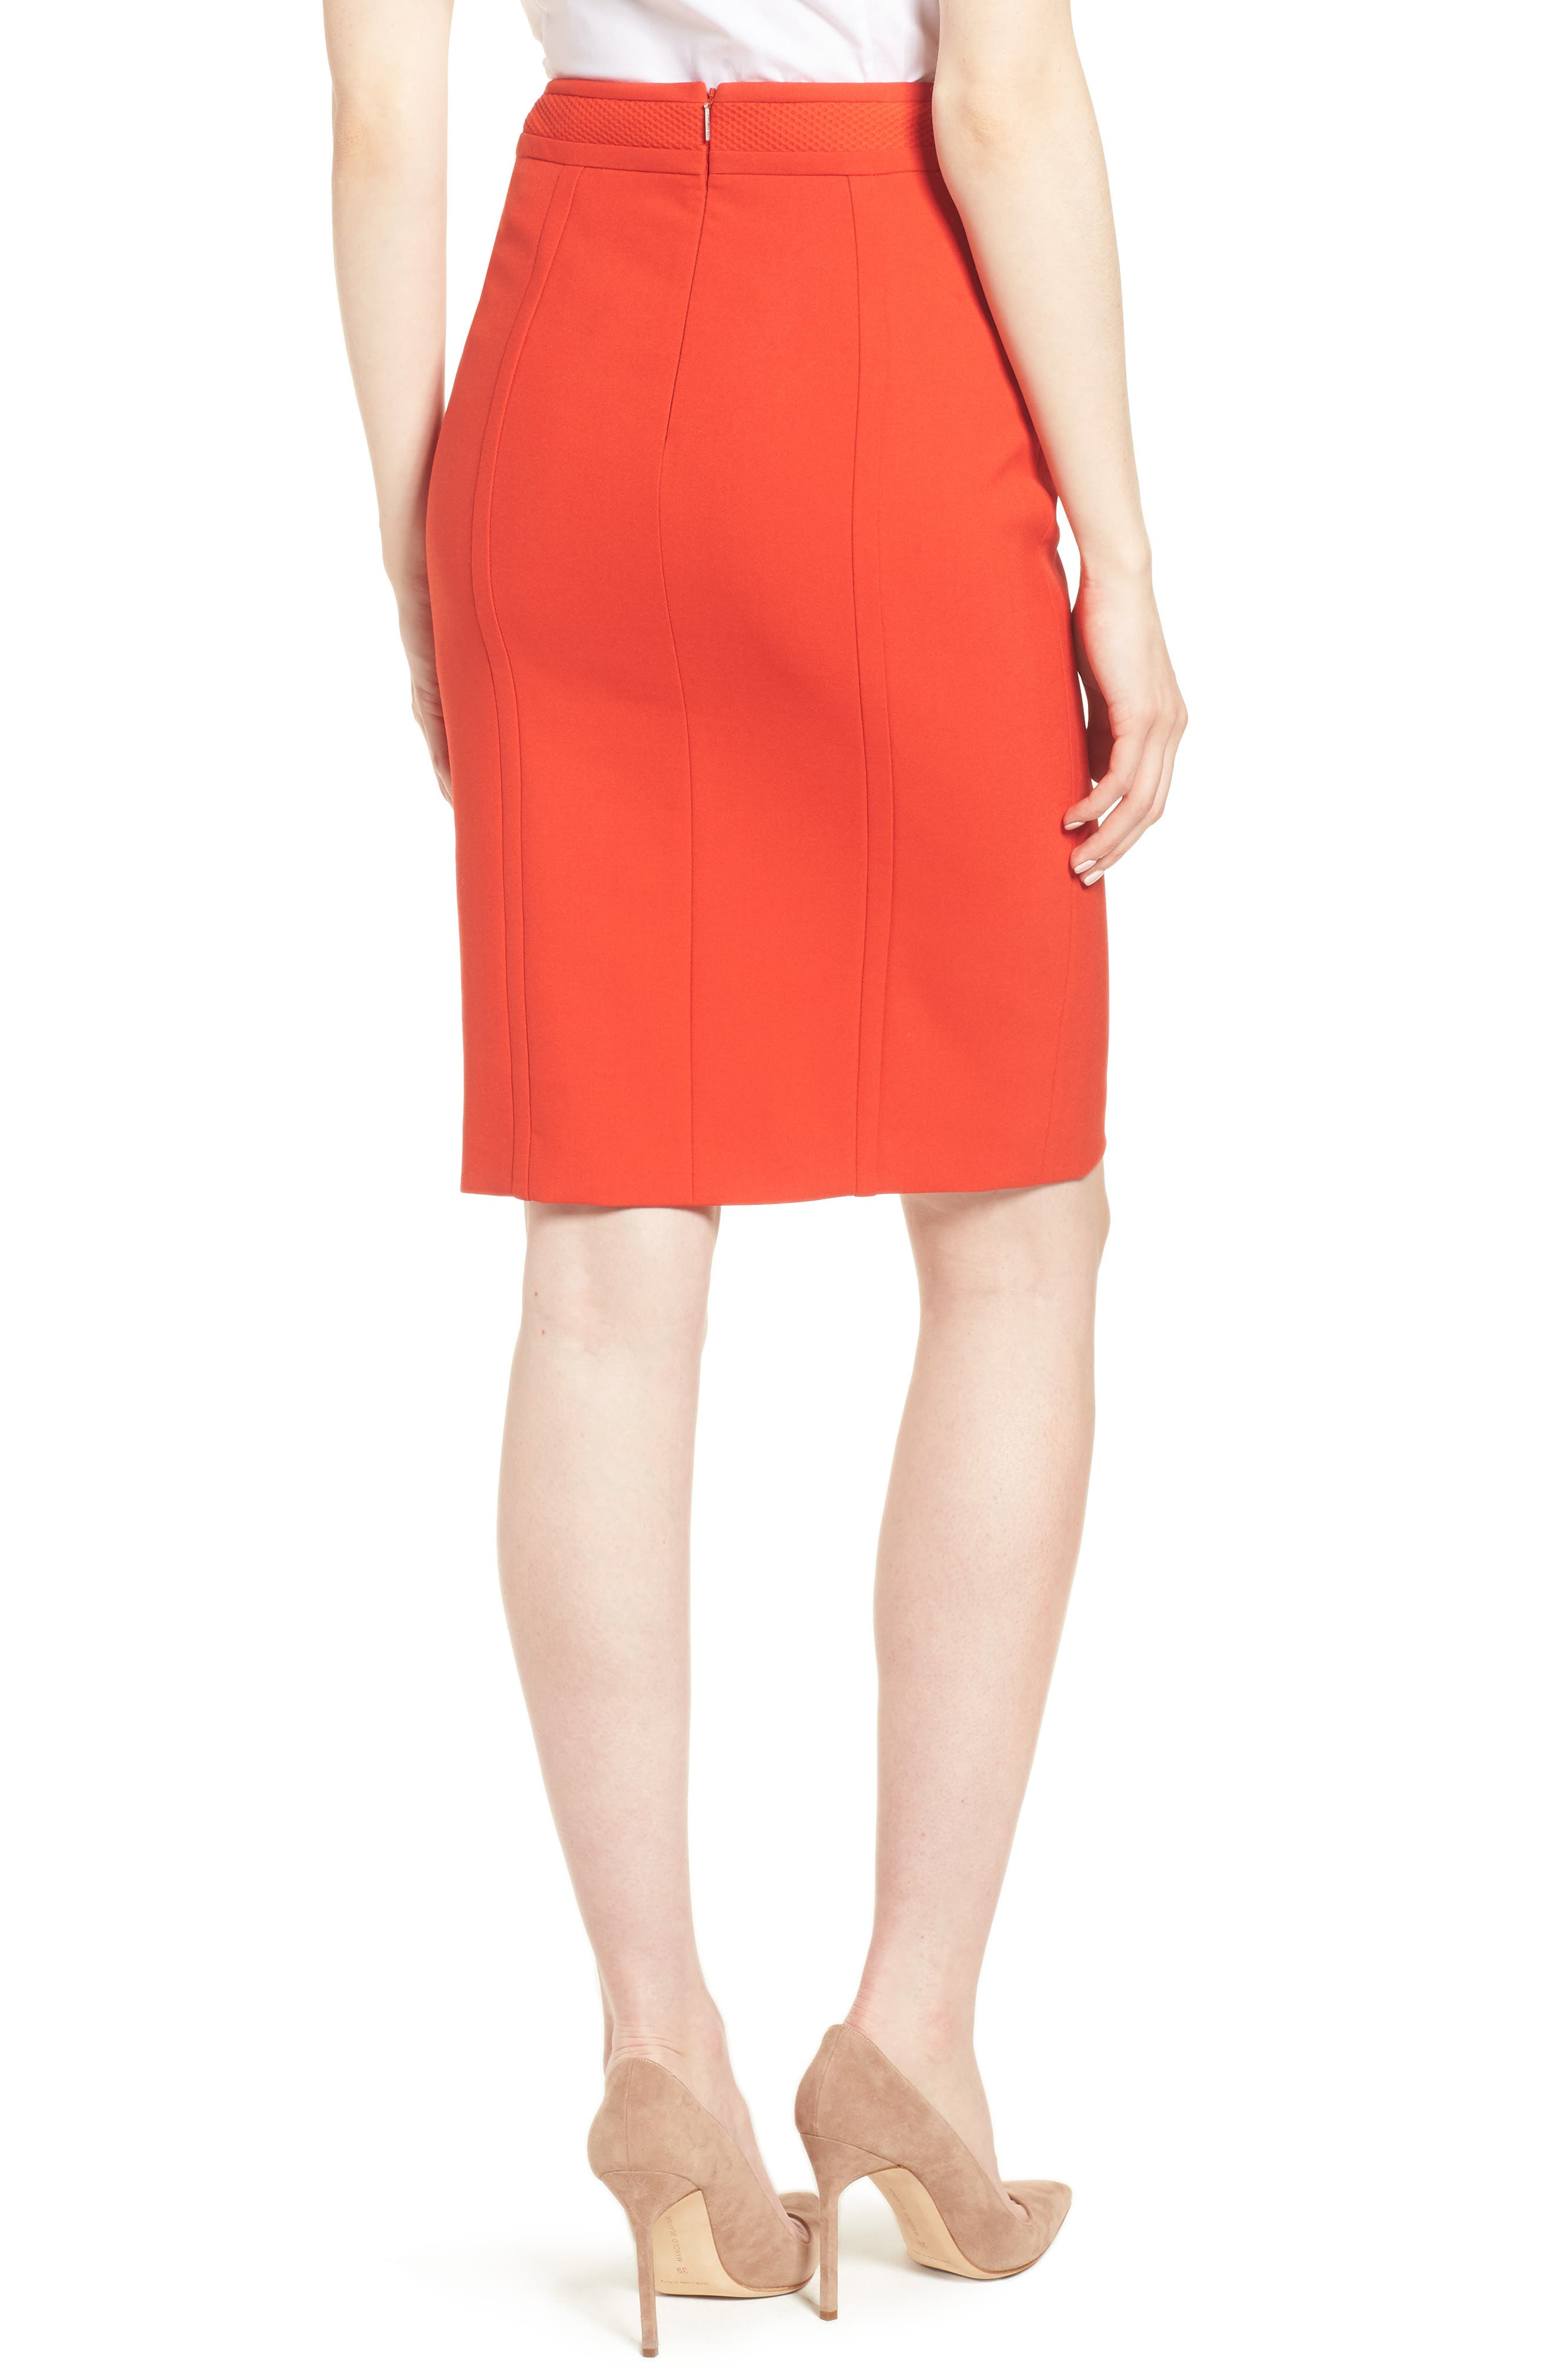 Vadama Ponte Pencil Skirt,                             Alternate thumbnail 2, color,                             Sunset Orange